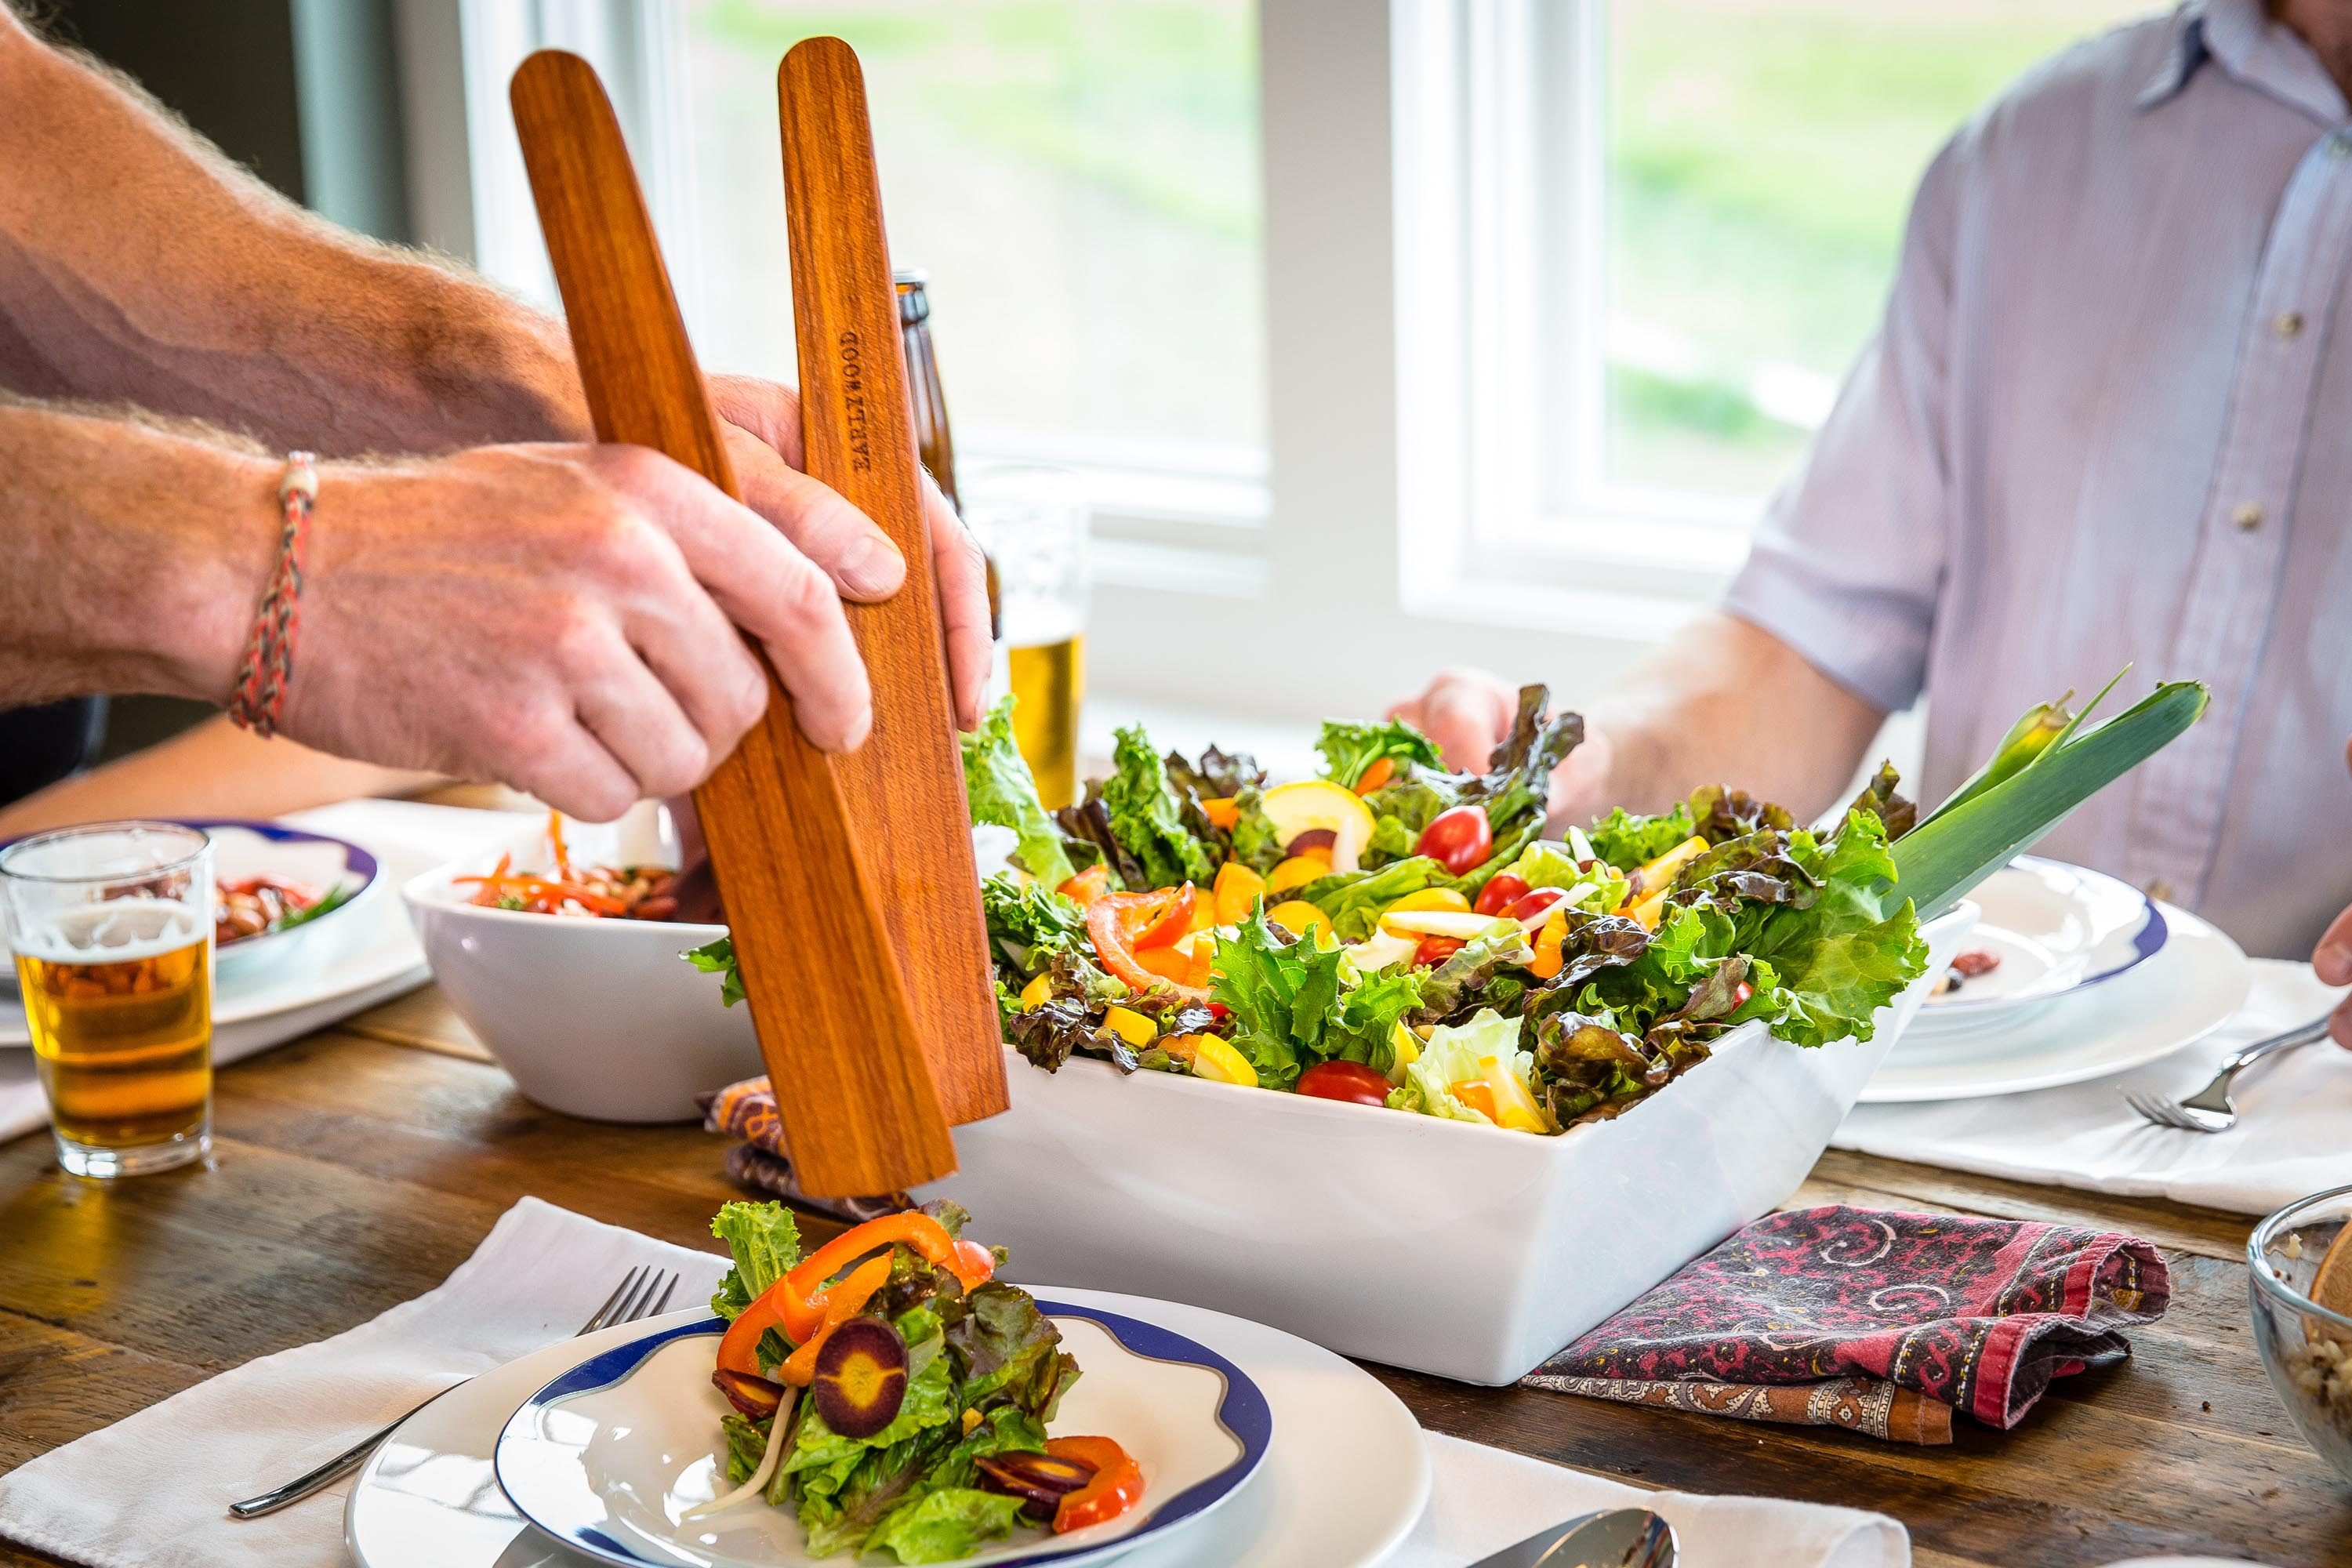 Two wood spatulas for serving salad